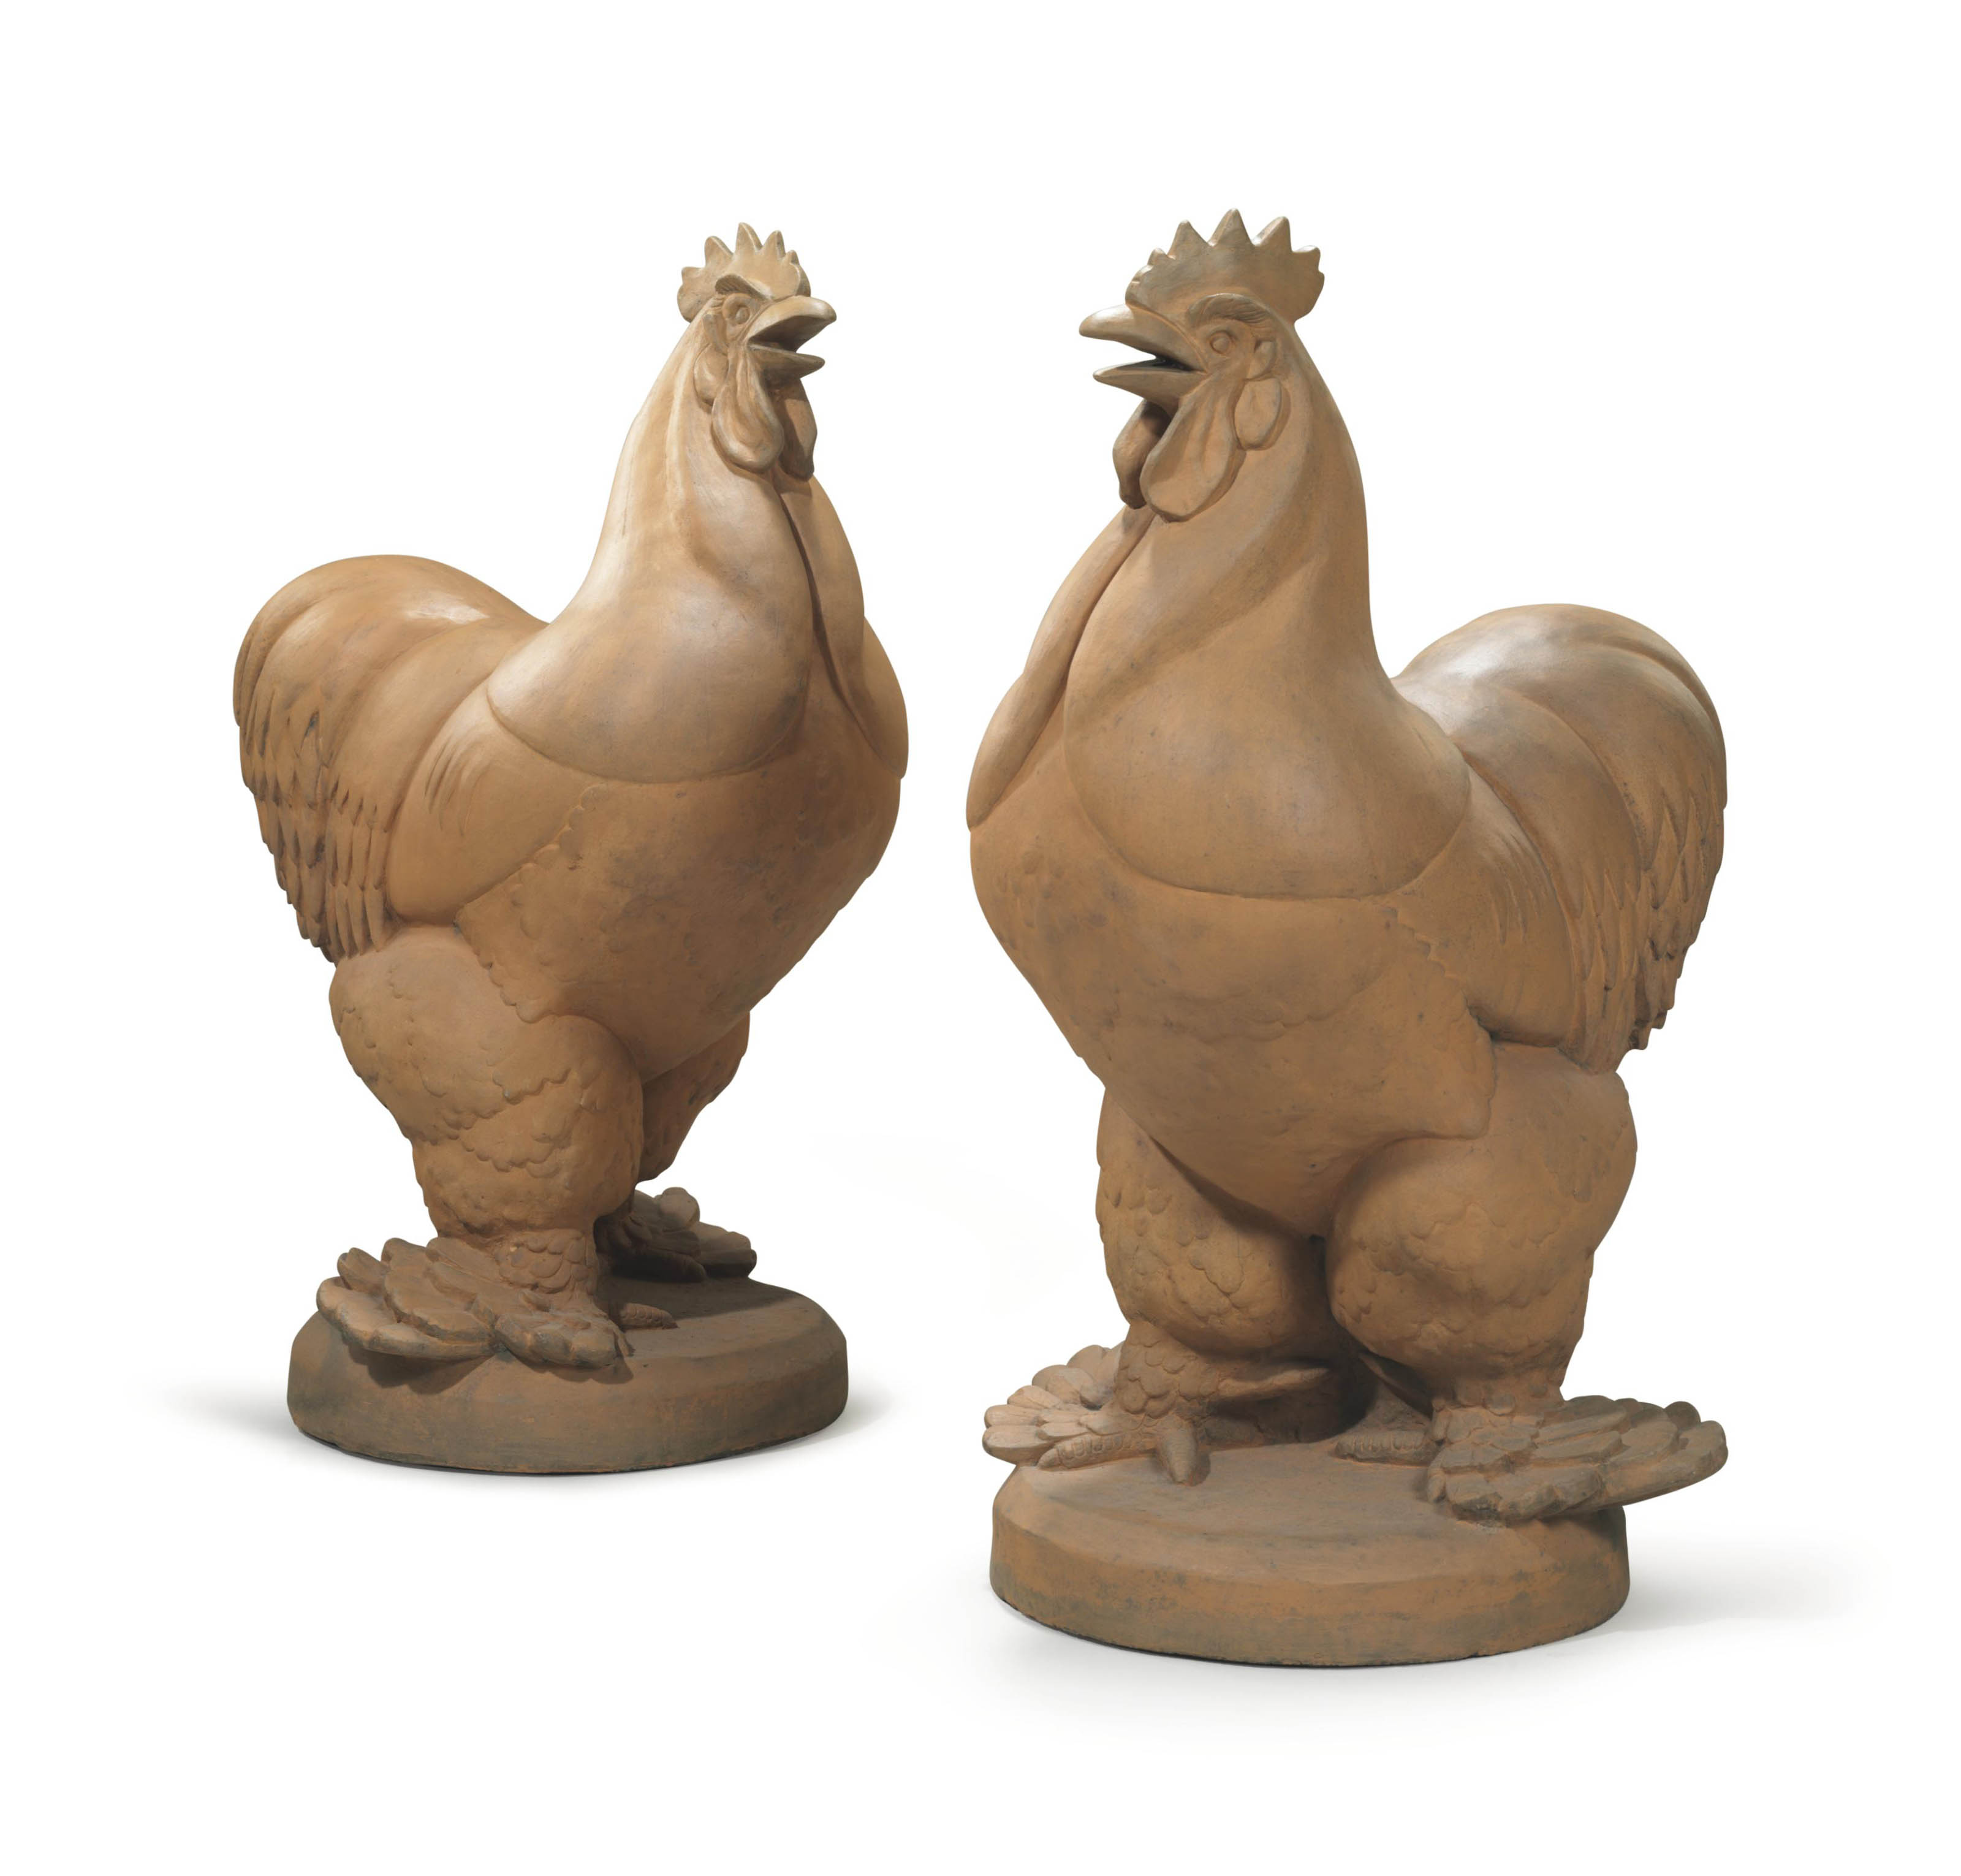 'Pajamas': A Pair of Gatepost Roosters